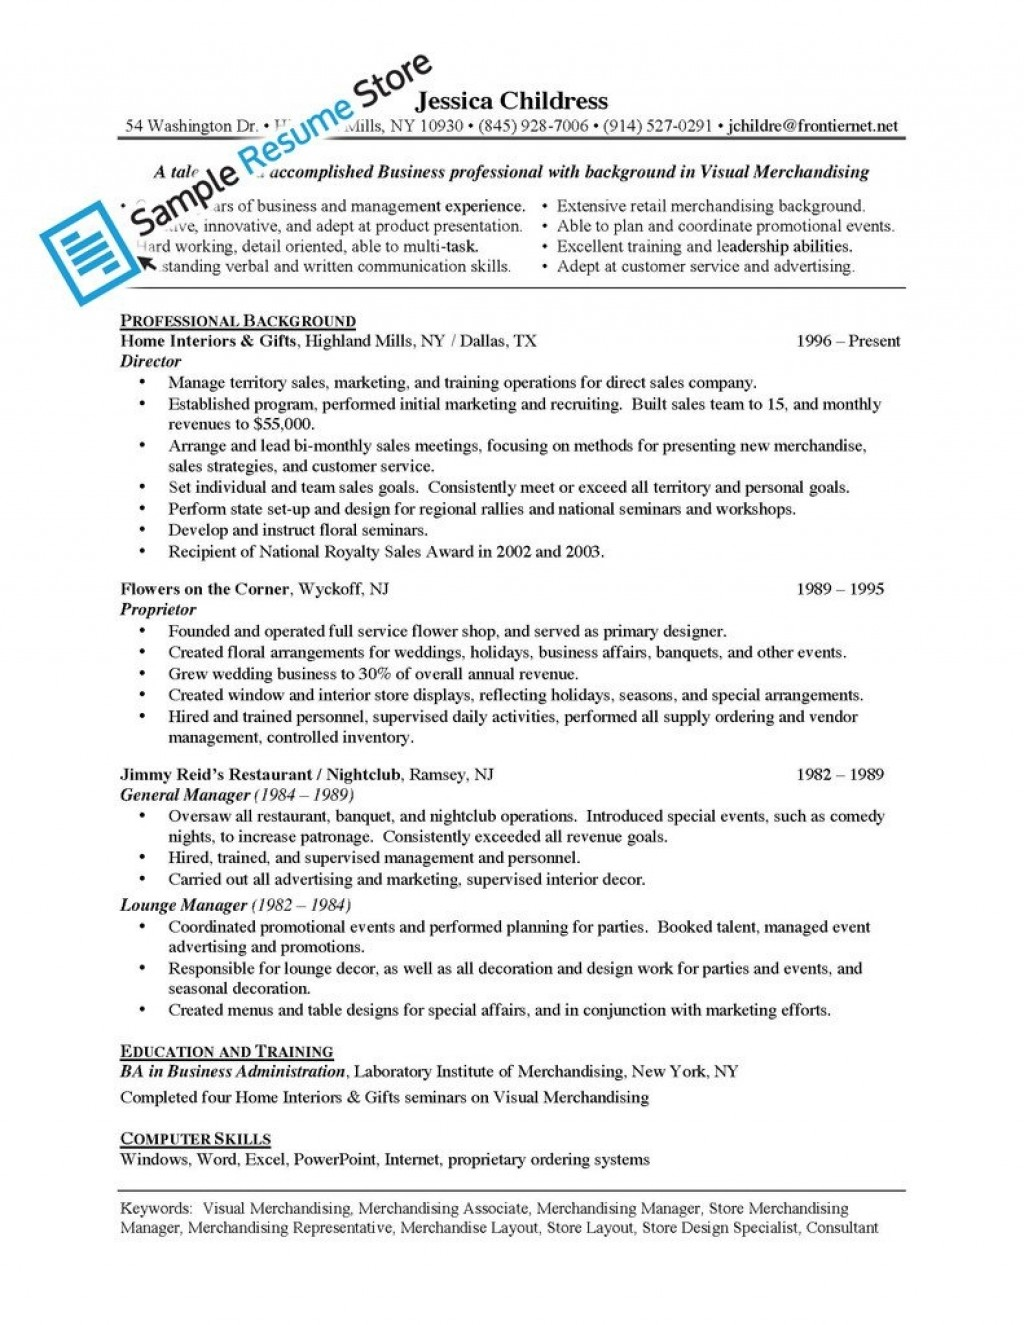 020 How To Write Process Essay Merchandiser Resume Essays With Example Senior X Top A Ielts Thesis Statement For Analysis Large